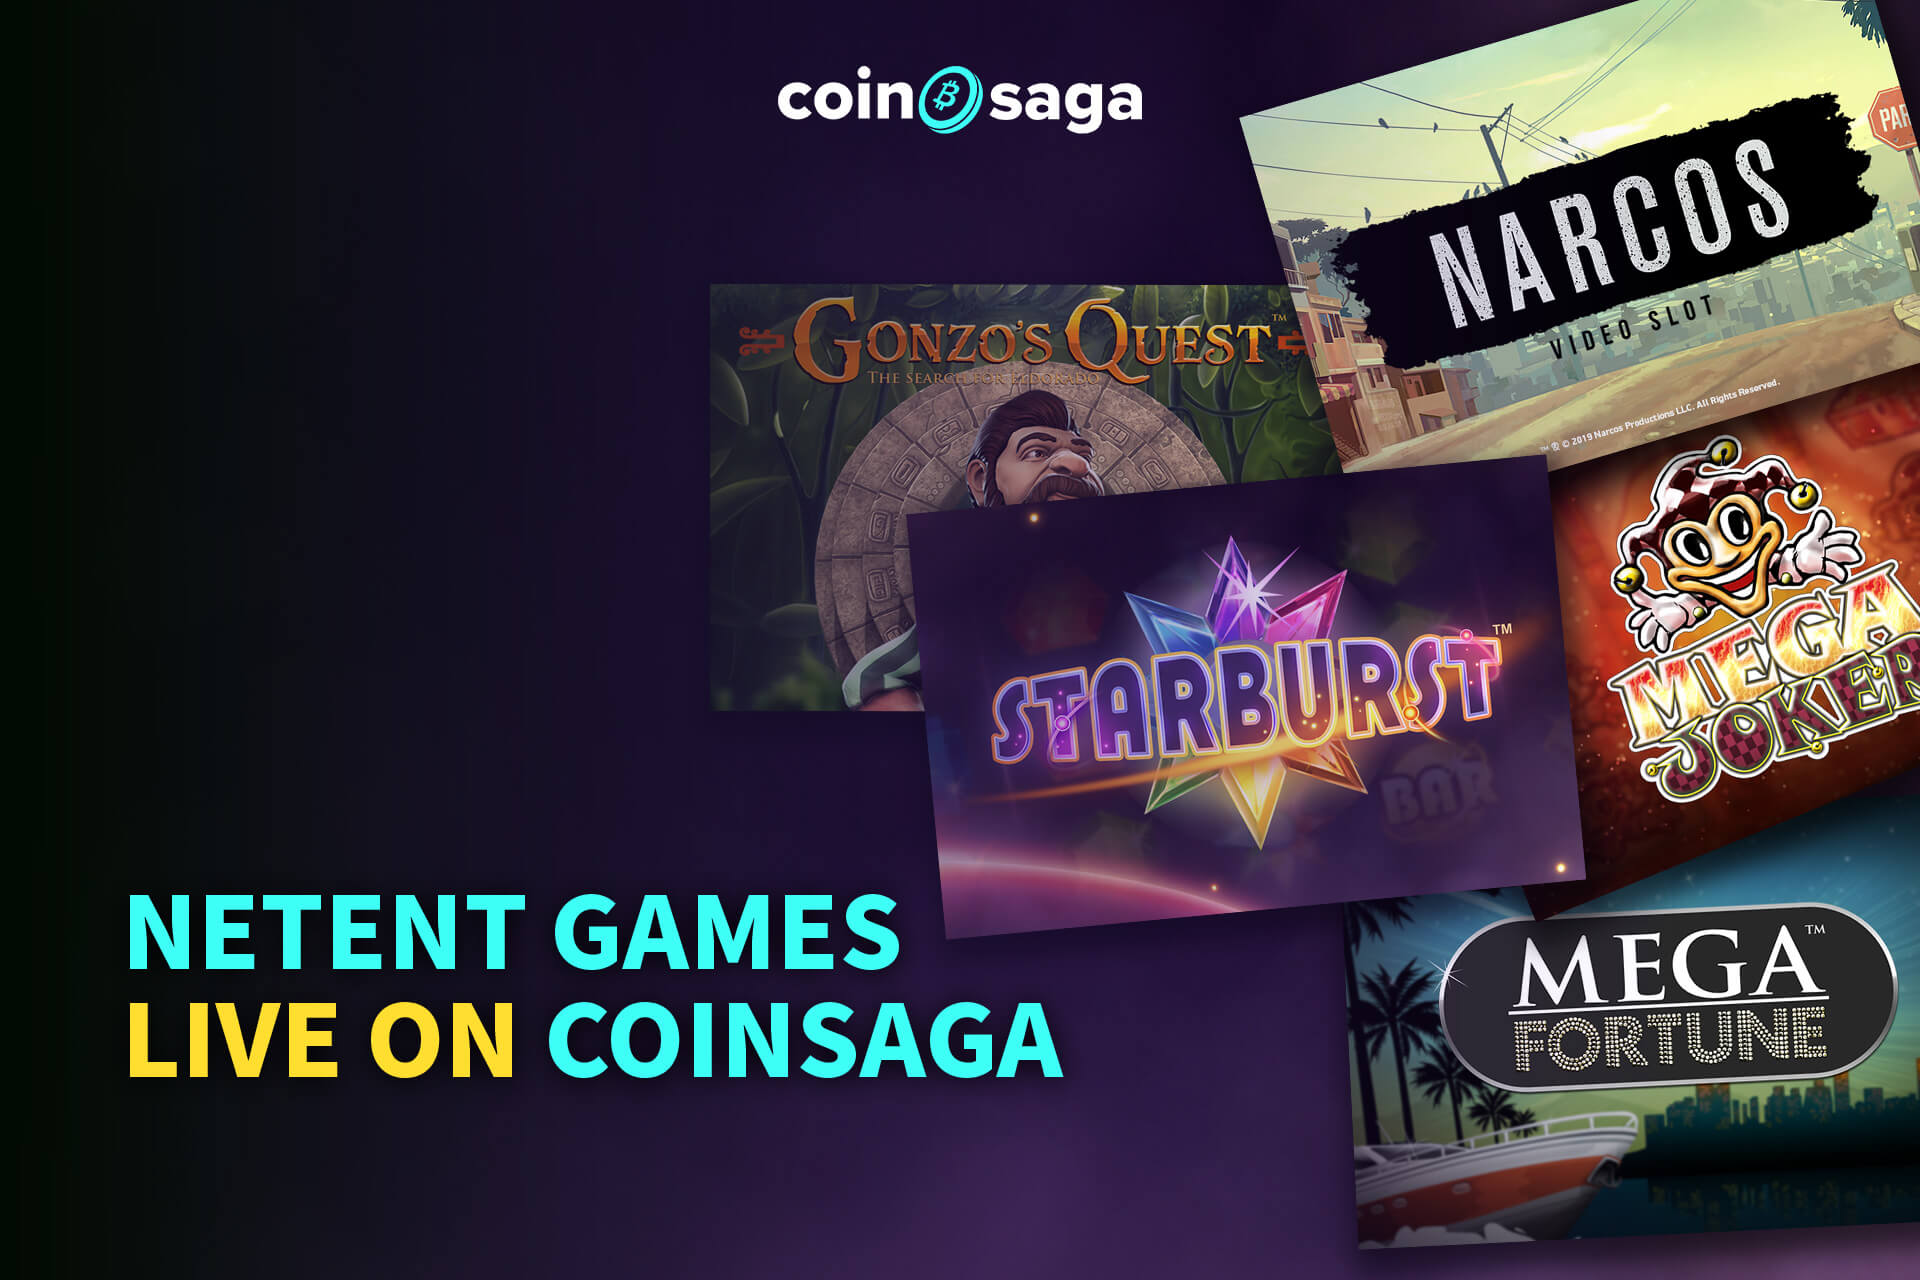 netent games live on coinsaga